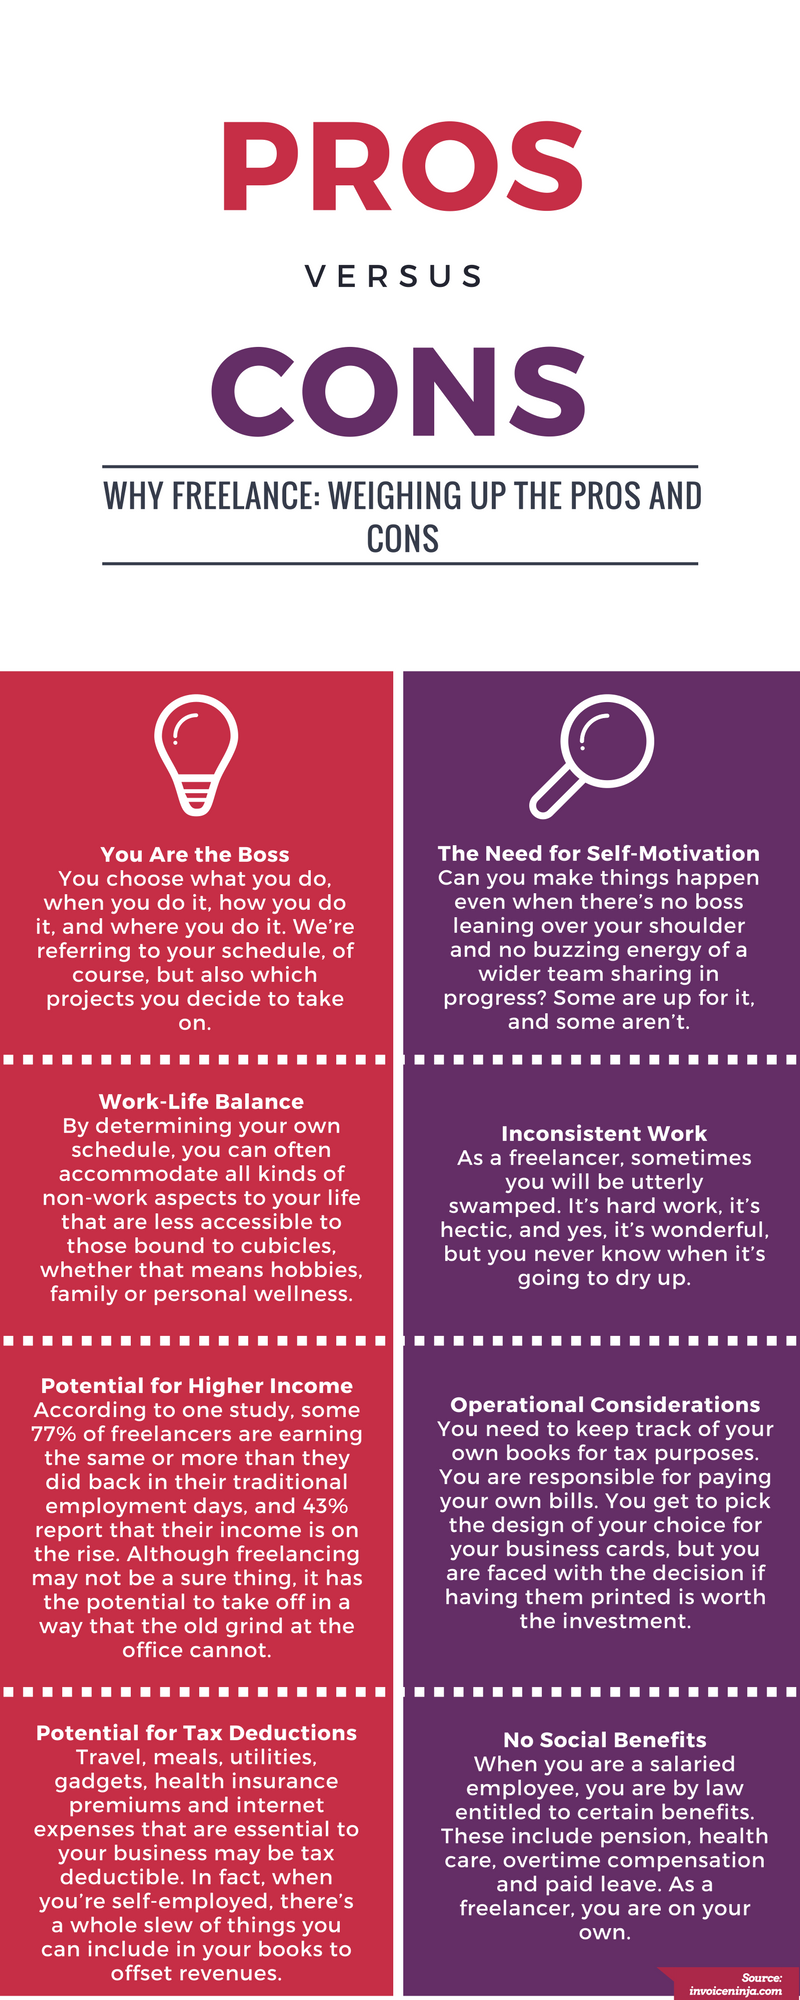 Here are the pros and cons of freelancing